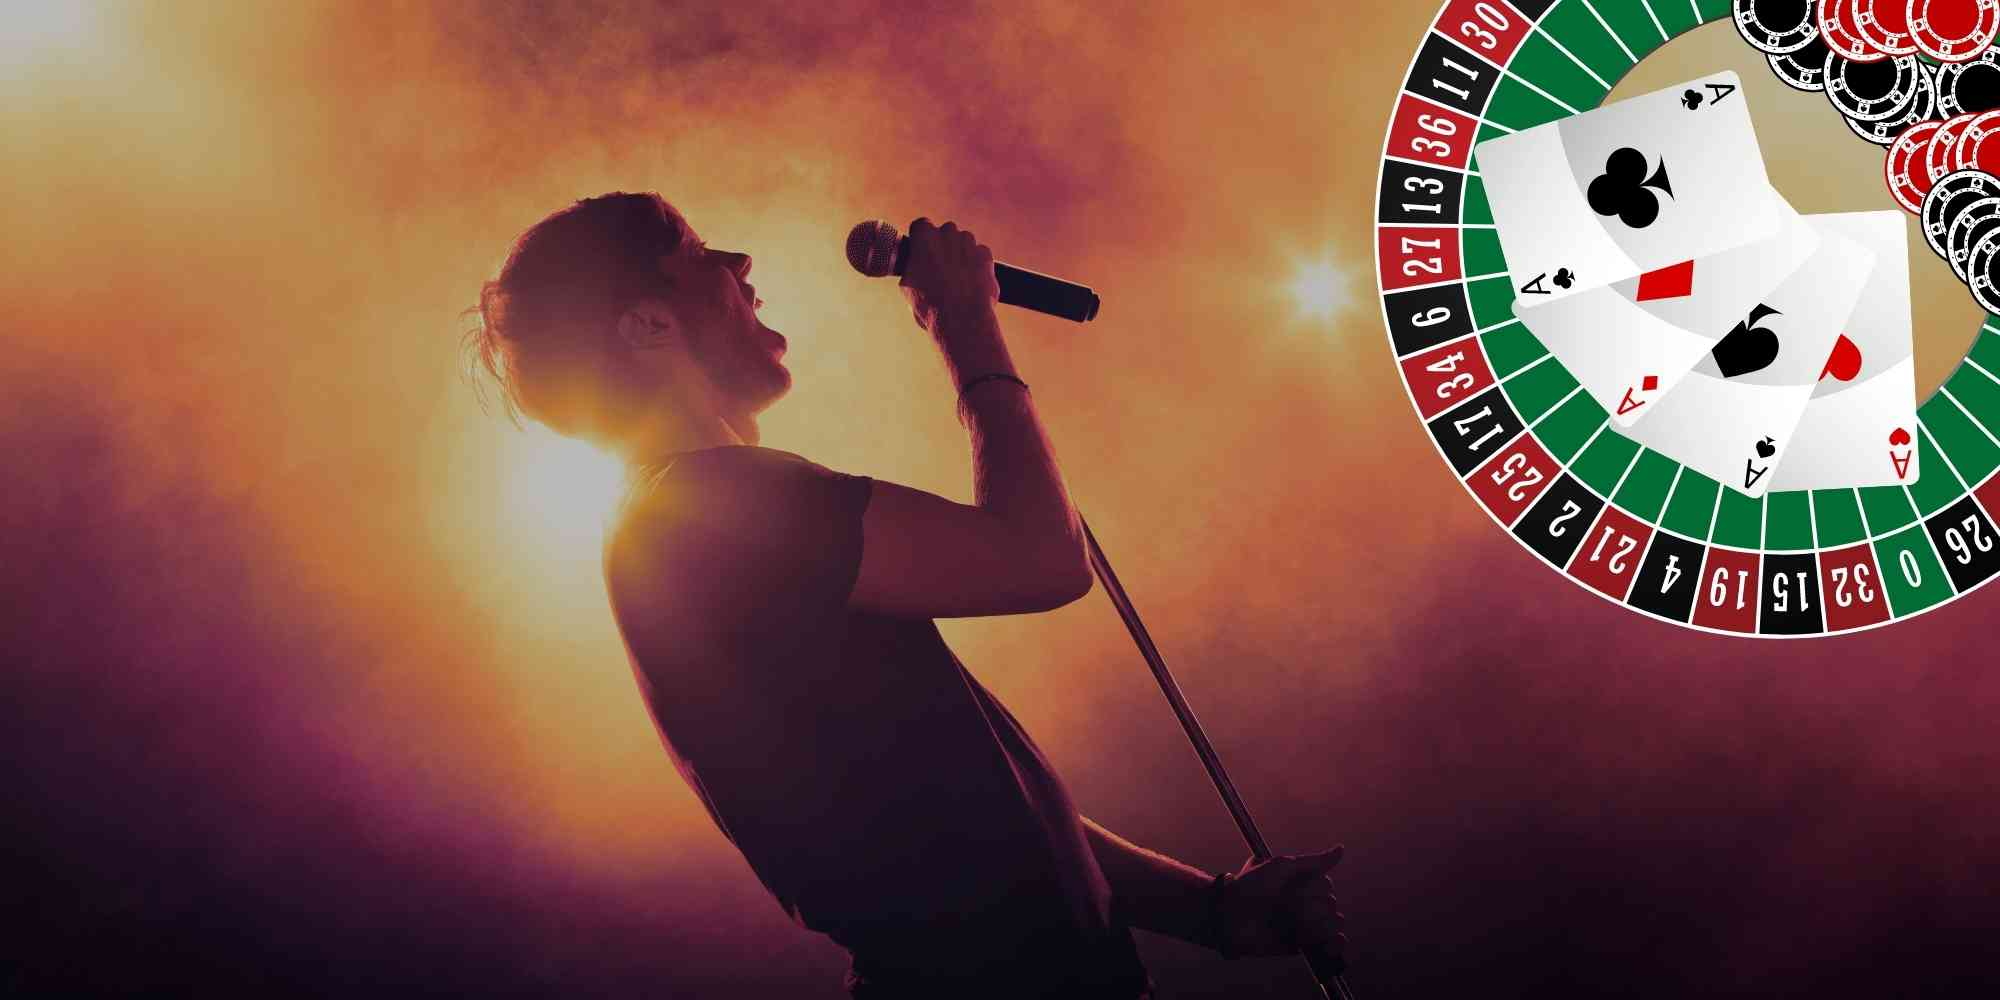 20 Best Songs About Gambling